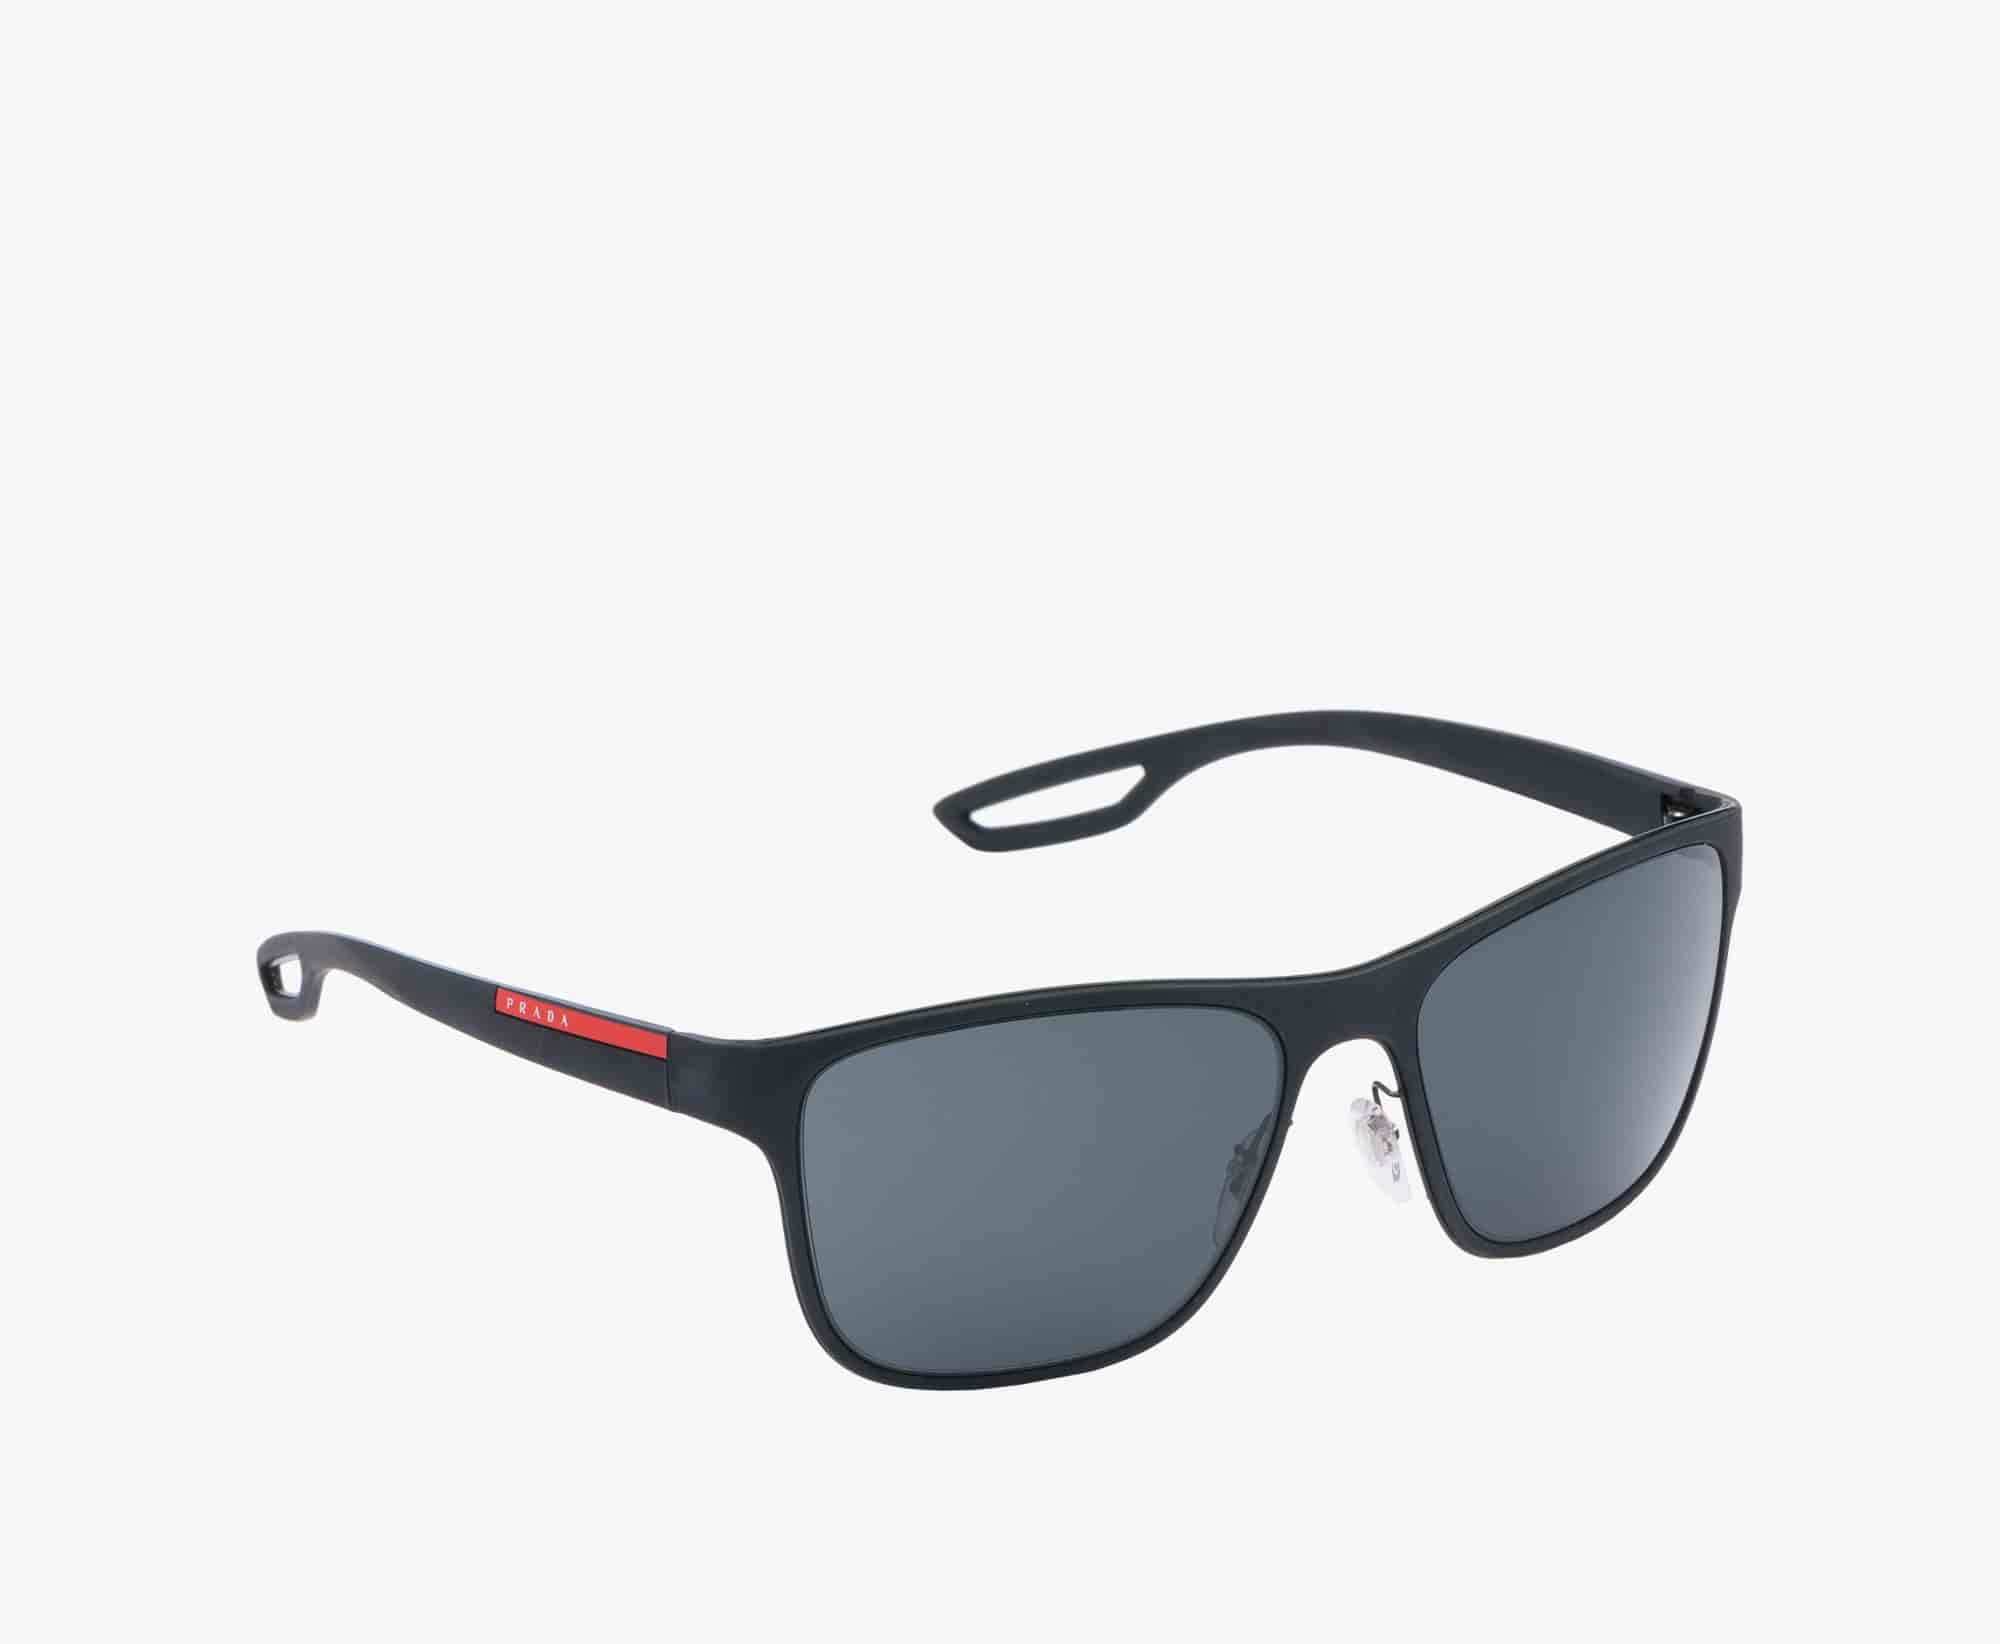 buy prada shades online india